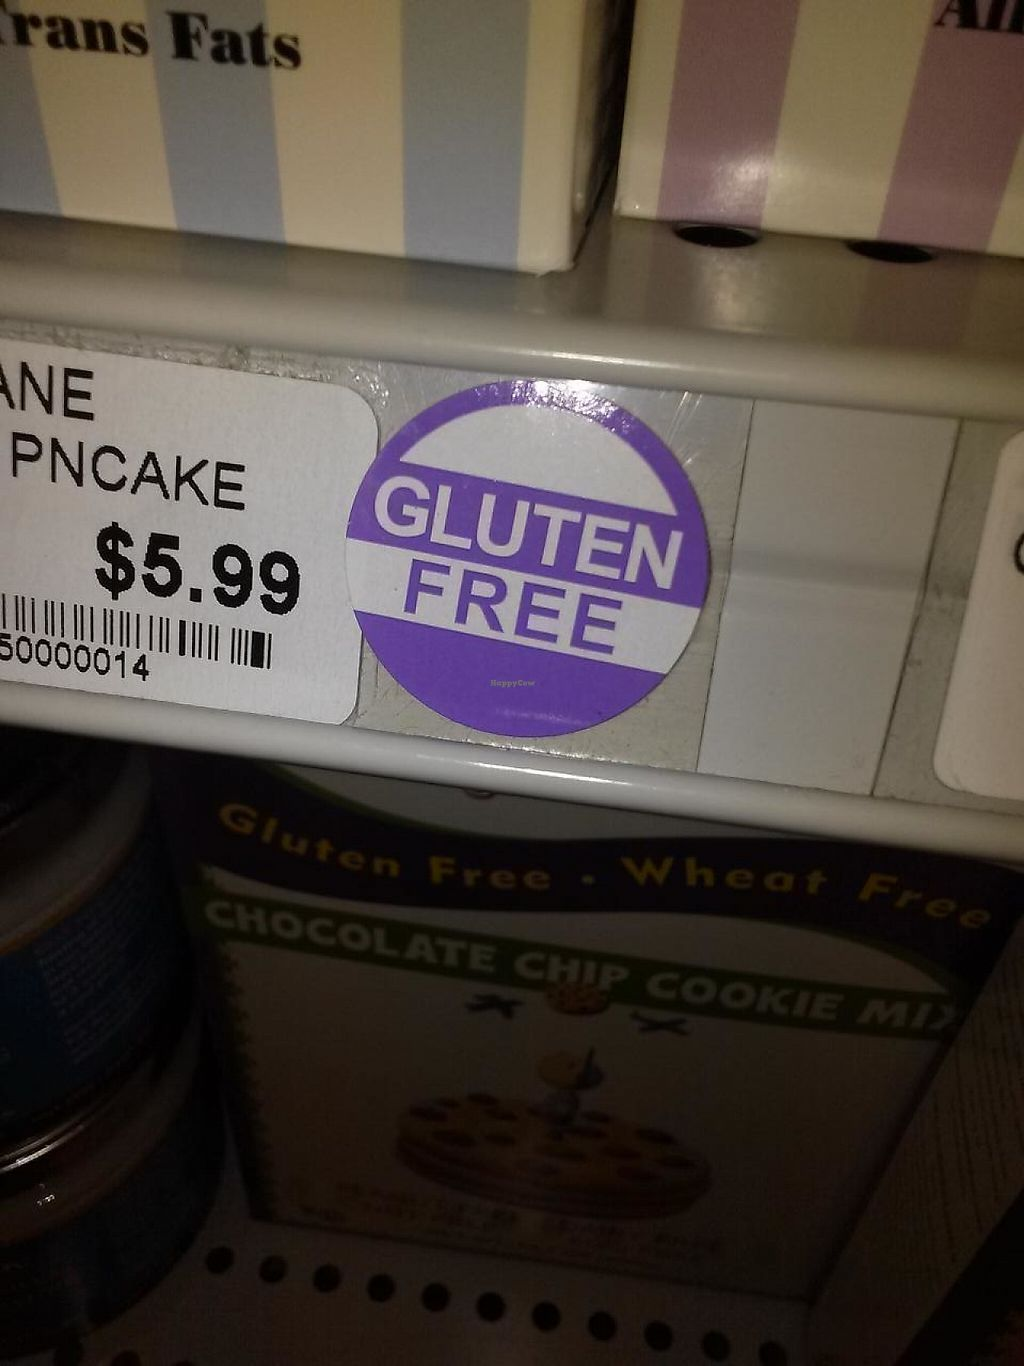 """Photo of Seven Grains Natural Market  by <a href=""""/members/profile/Il0veyouAlexis"""">Il0veyouAlexis</a> <br/>Gluten free stickers!  <br/> January 5, 2014  - <a href='/contact/abuse/image/12745/215401'>Report</a>"""